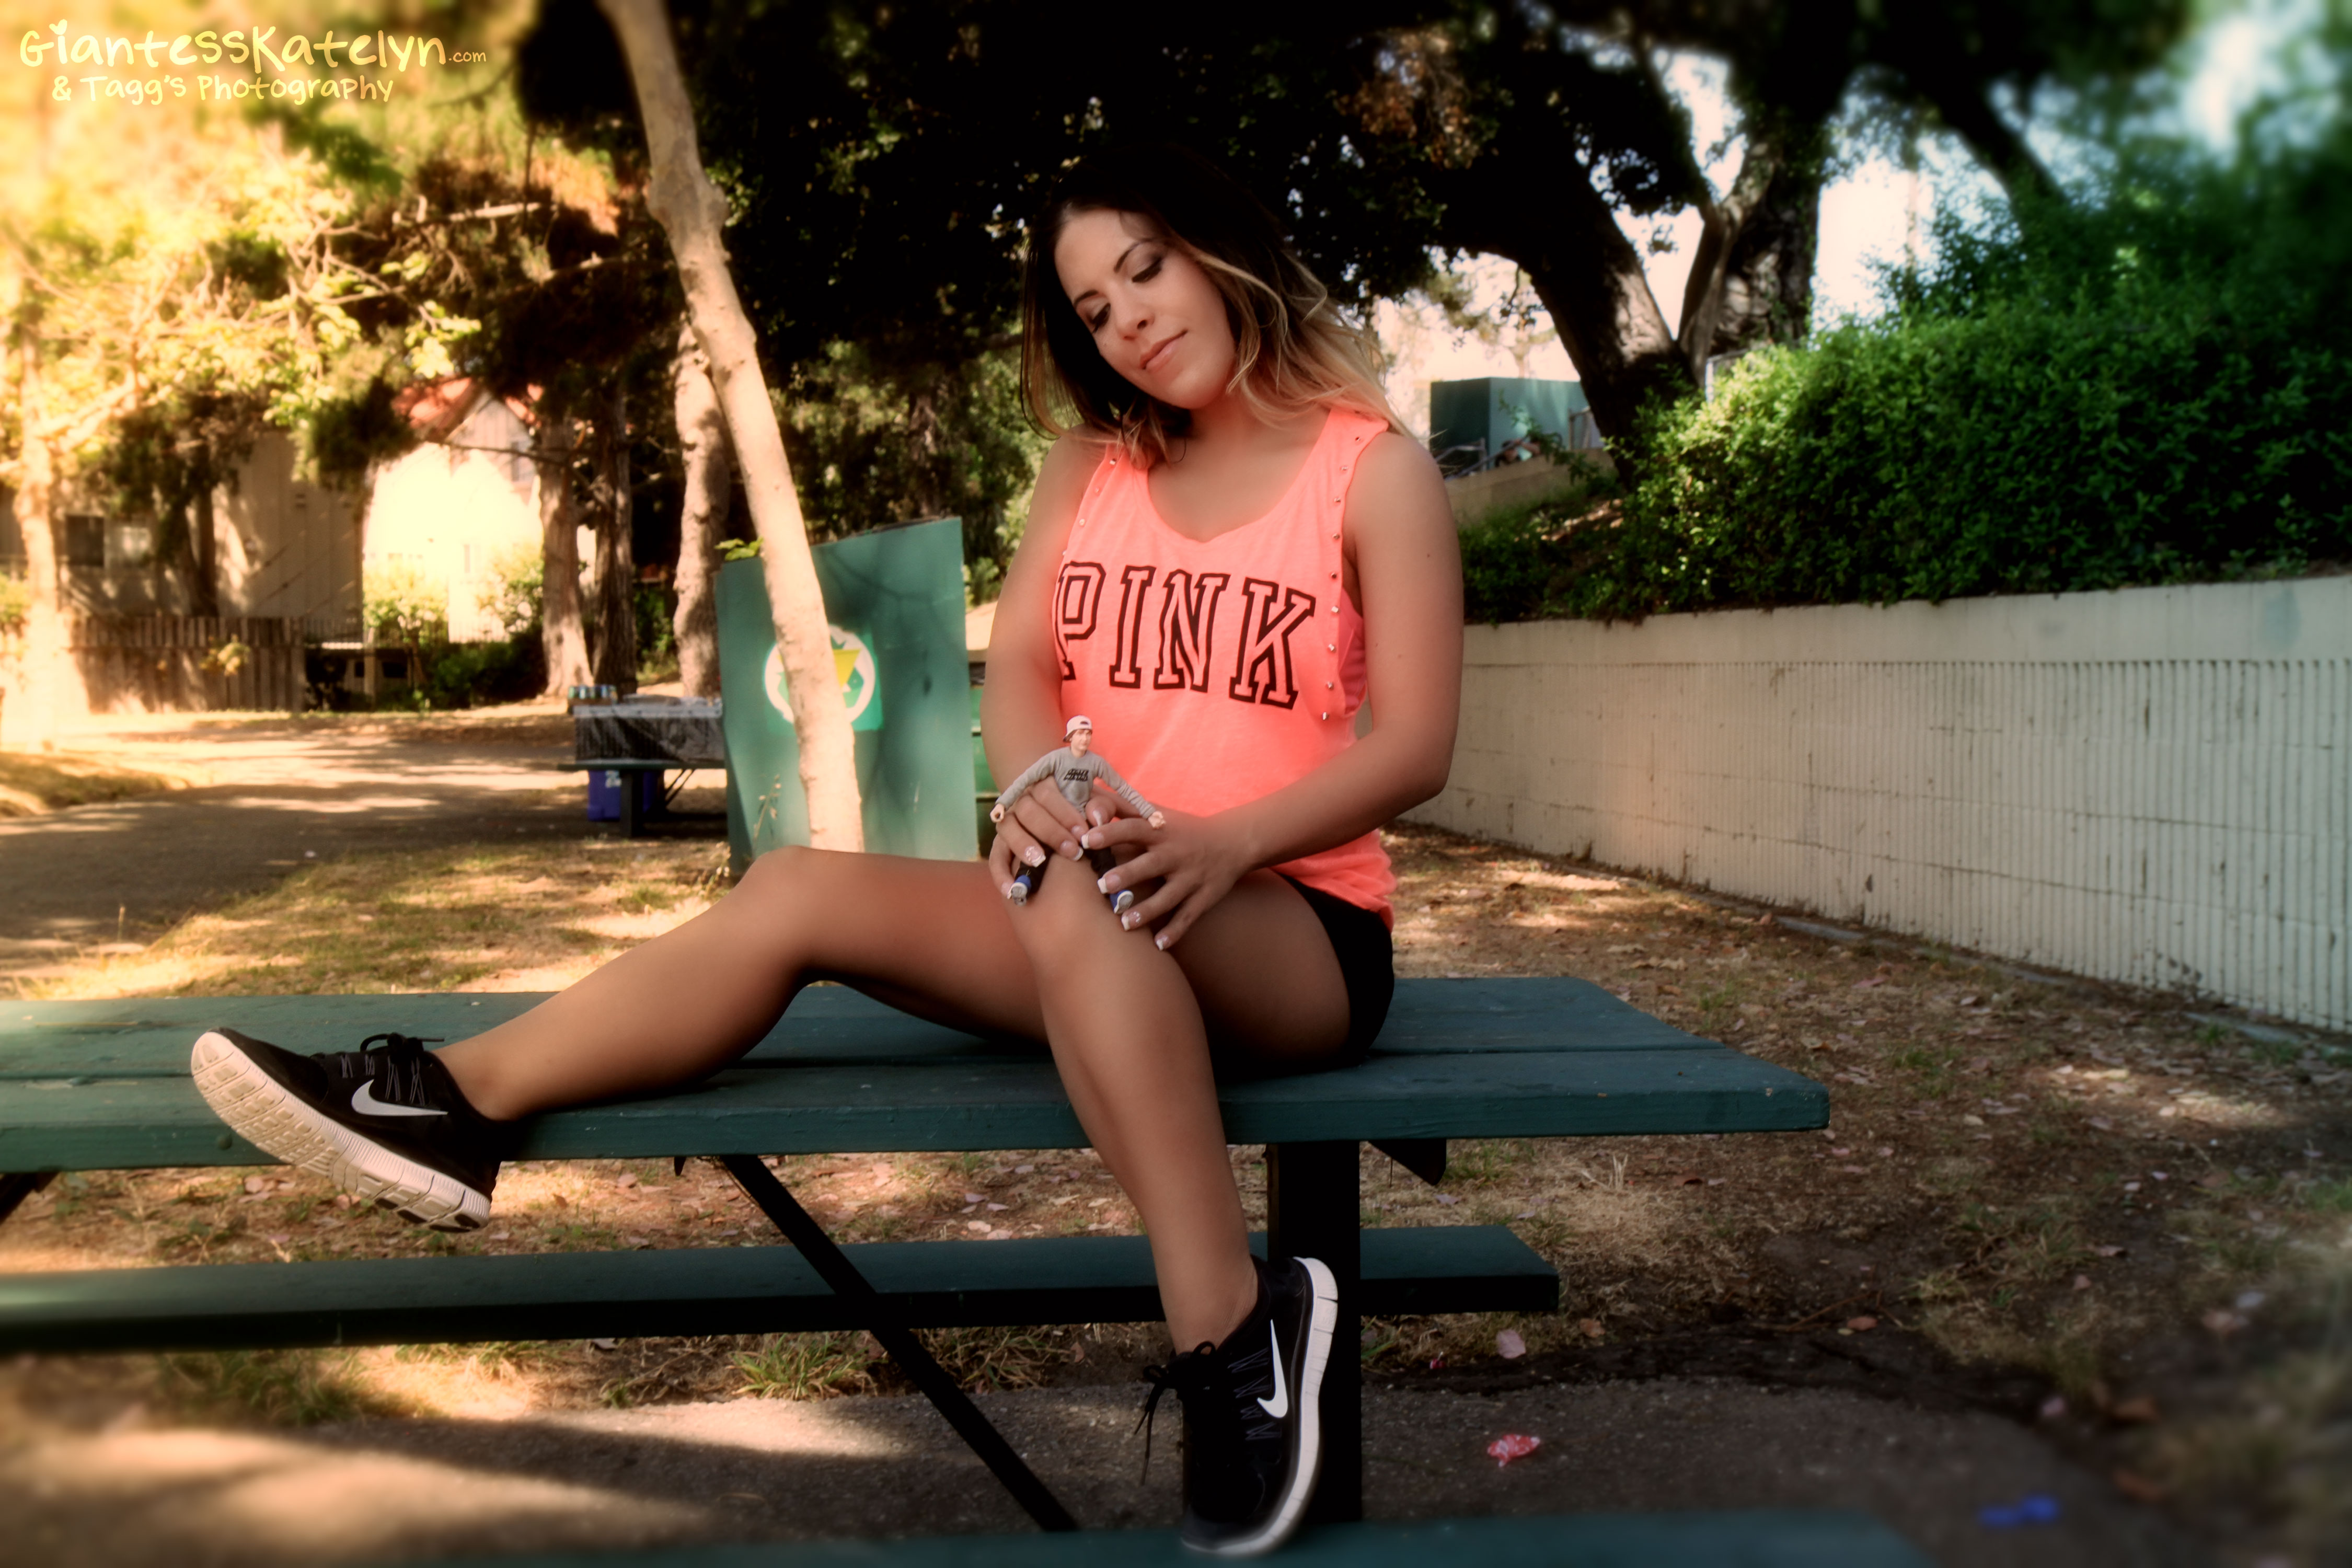 At_The_Park_with_Giantess_Katelyn-02